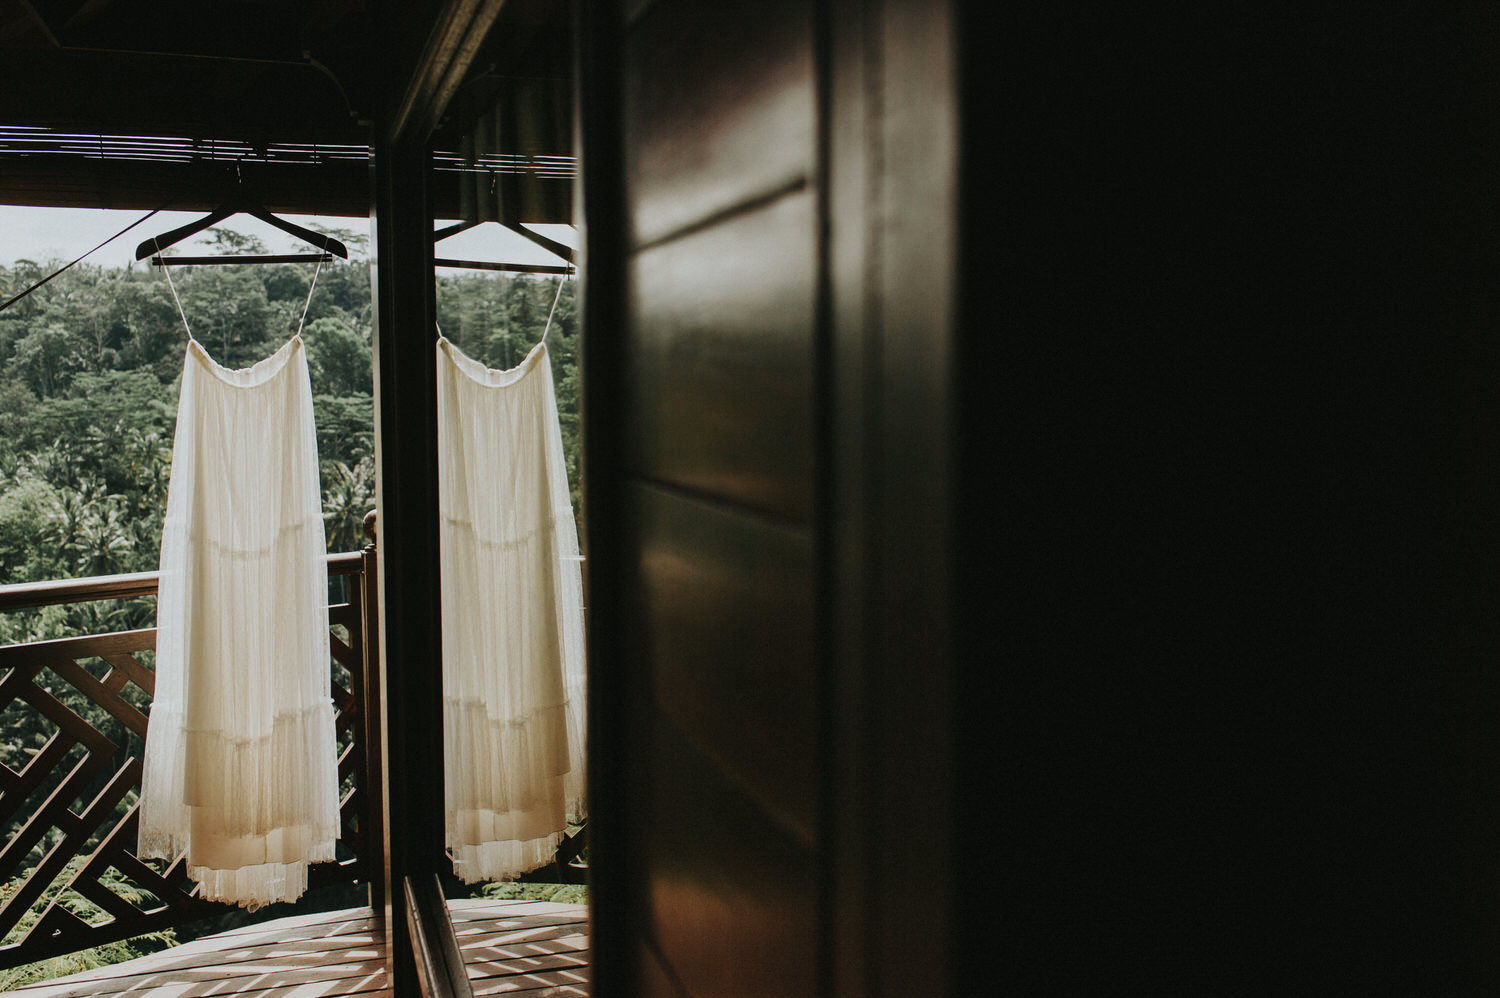 bali wedding - elopement - ubud wedding - diktatphotography - olga + Jason - 29